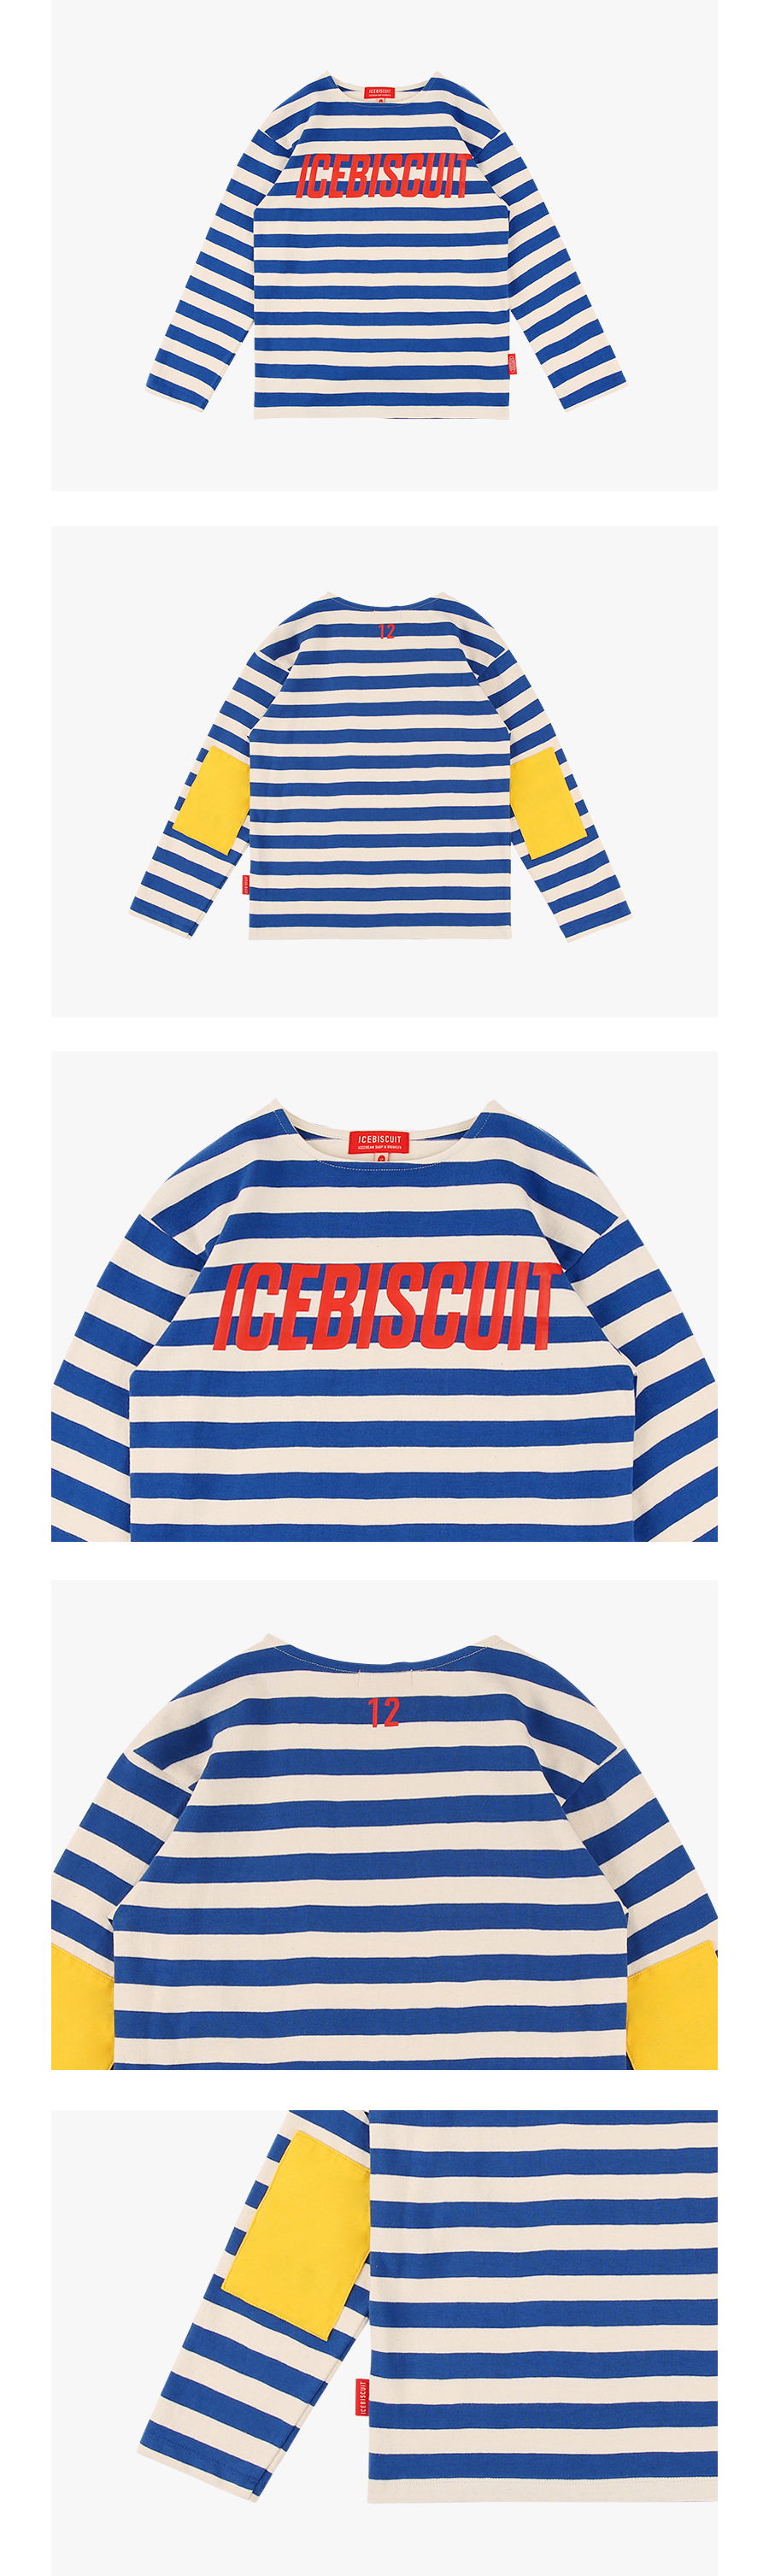 Icebiscuit elbow patch stripe tee 상세 이미지